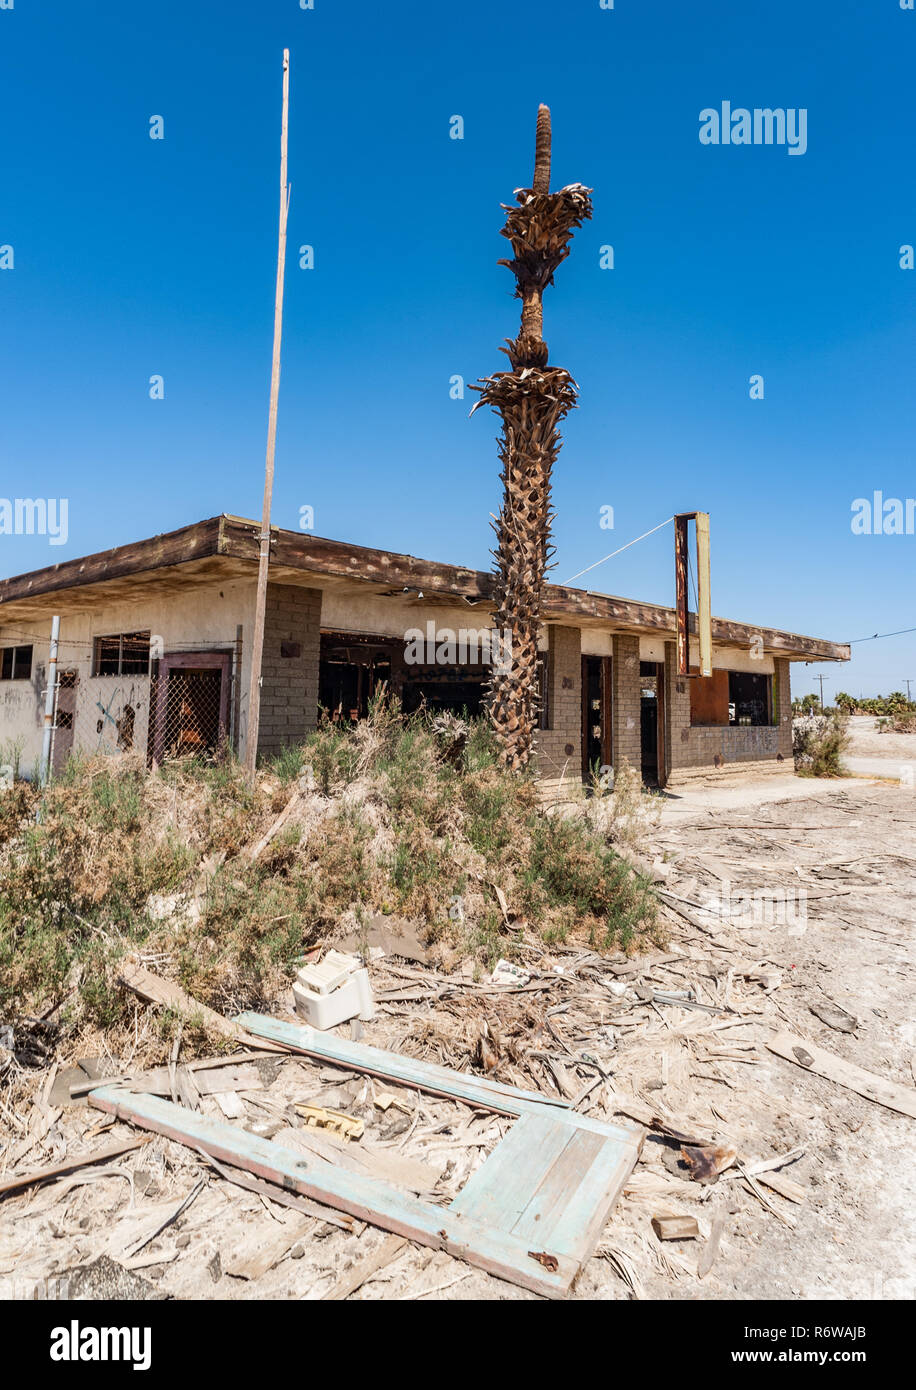 Abandonned building ruins and dead palm tree in the post apocaliptic landscape of the Salton sea in southern California - Stock Image